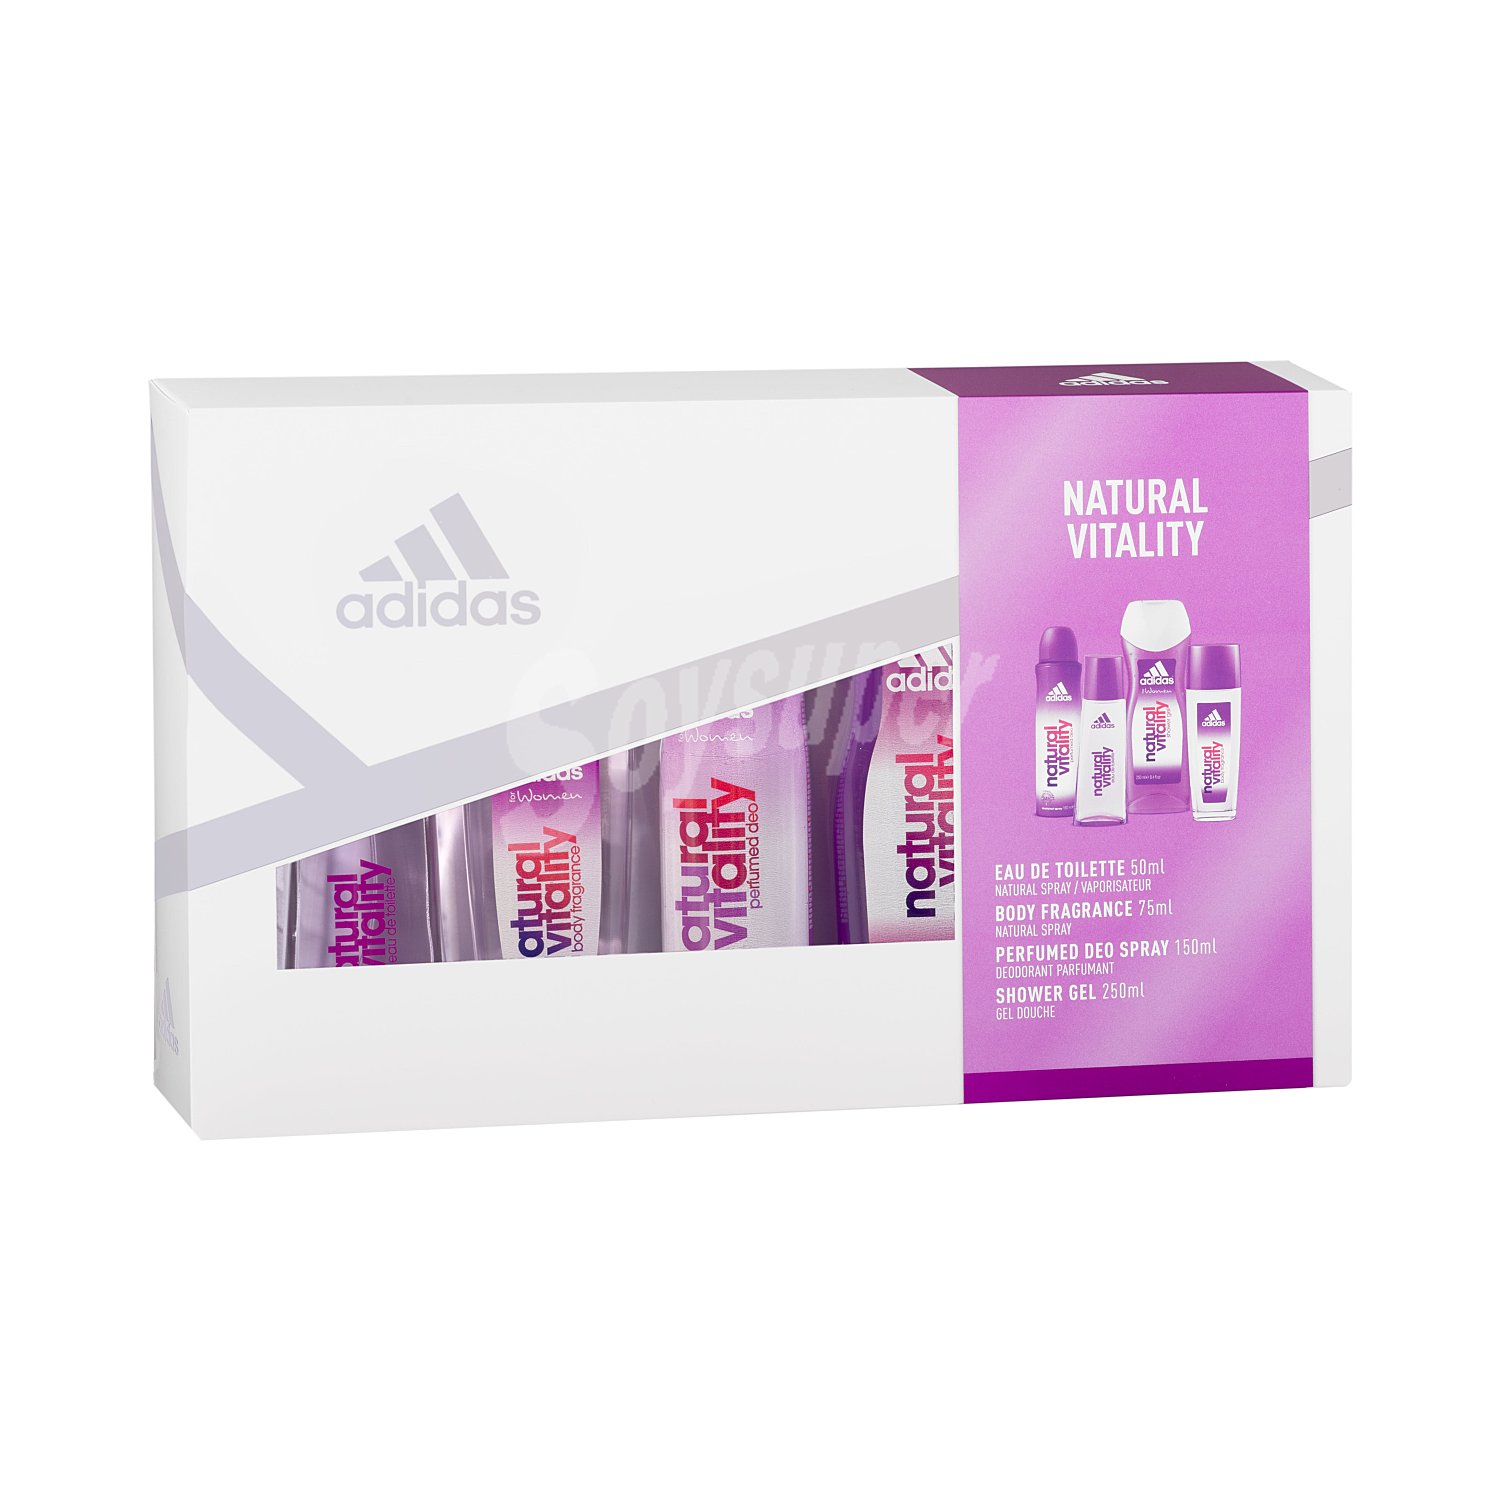 Adidas Lote mujer natural vitality eau toilette (vaporizador 75 ml) + gel ducha perfumado (bote 250 ml) + desodorante (spray 150 ml) + body spray